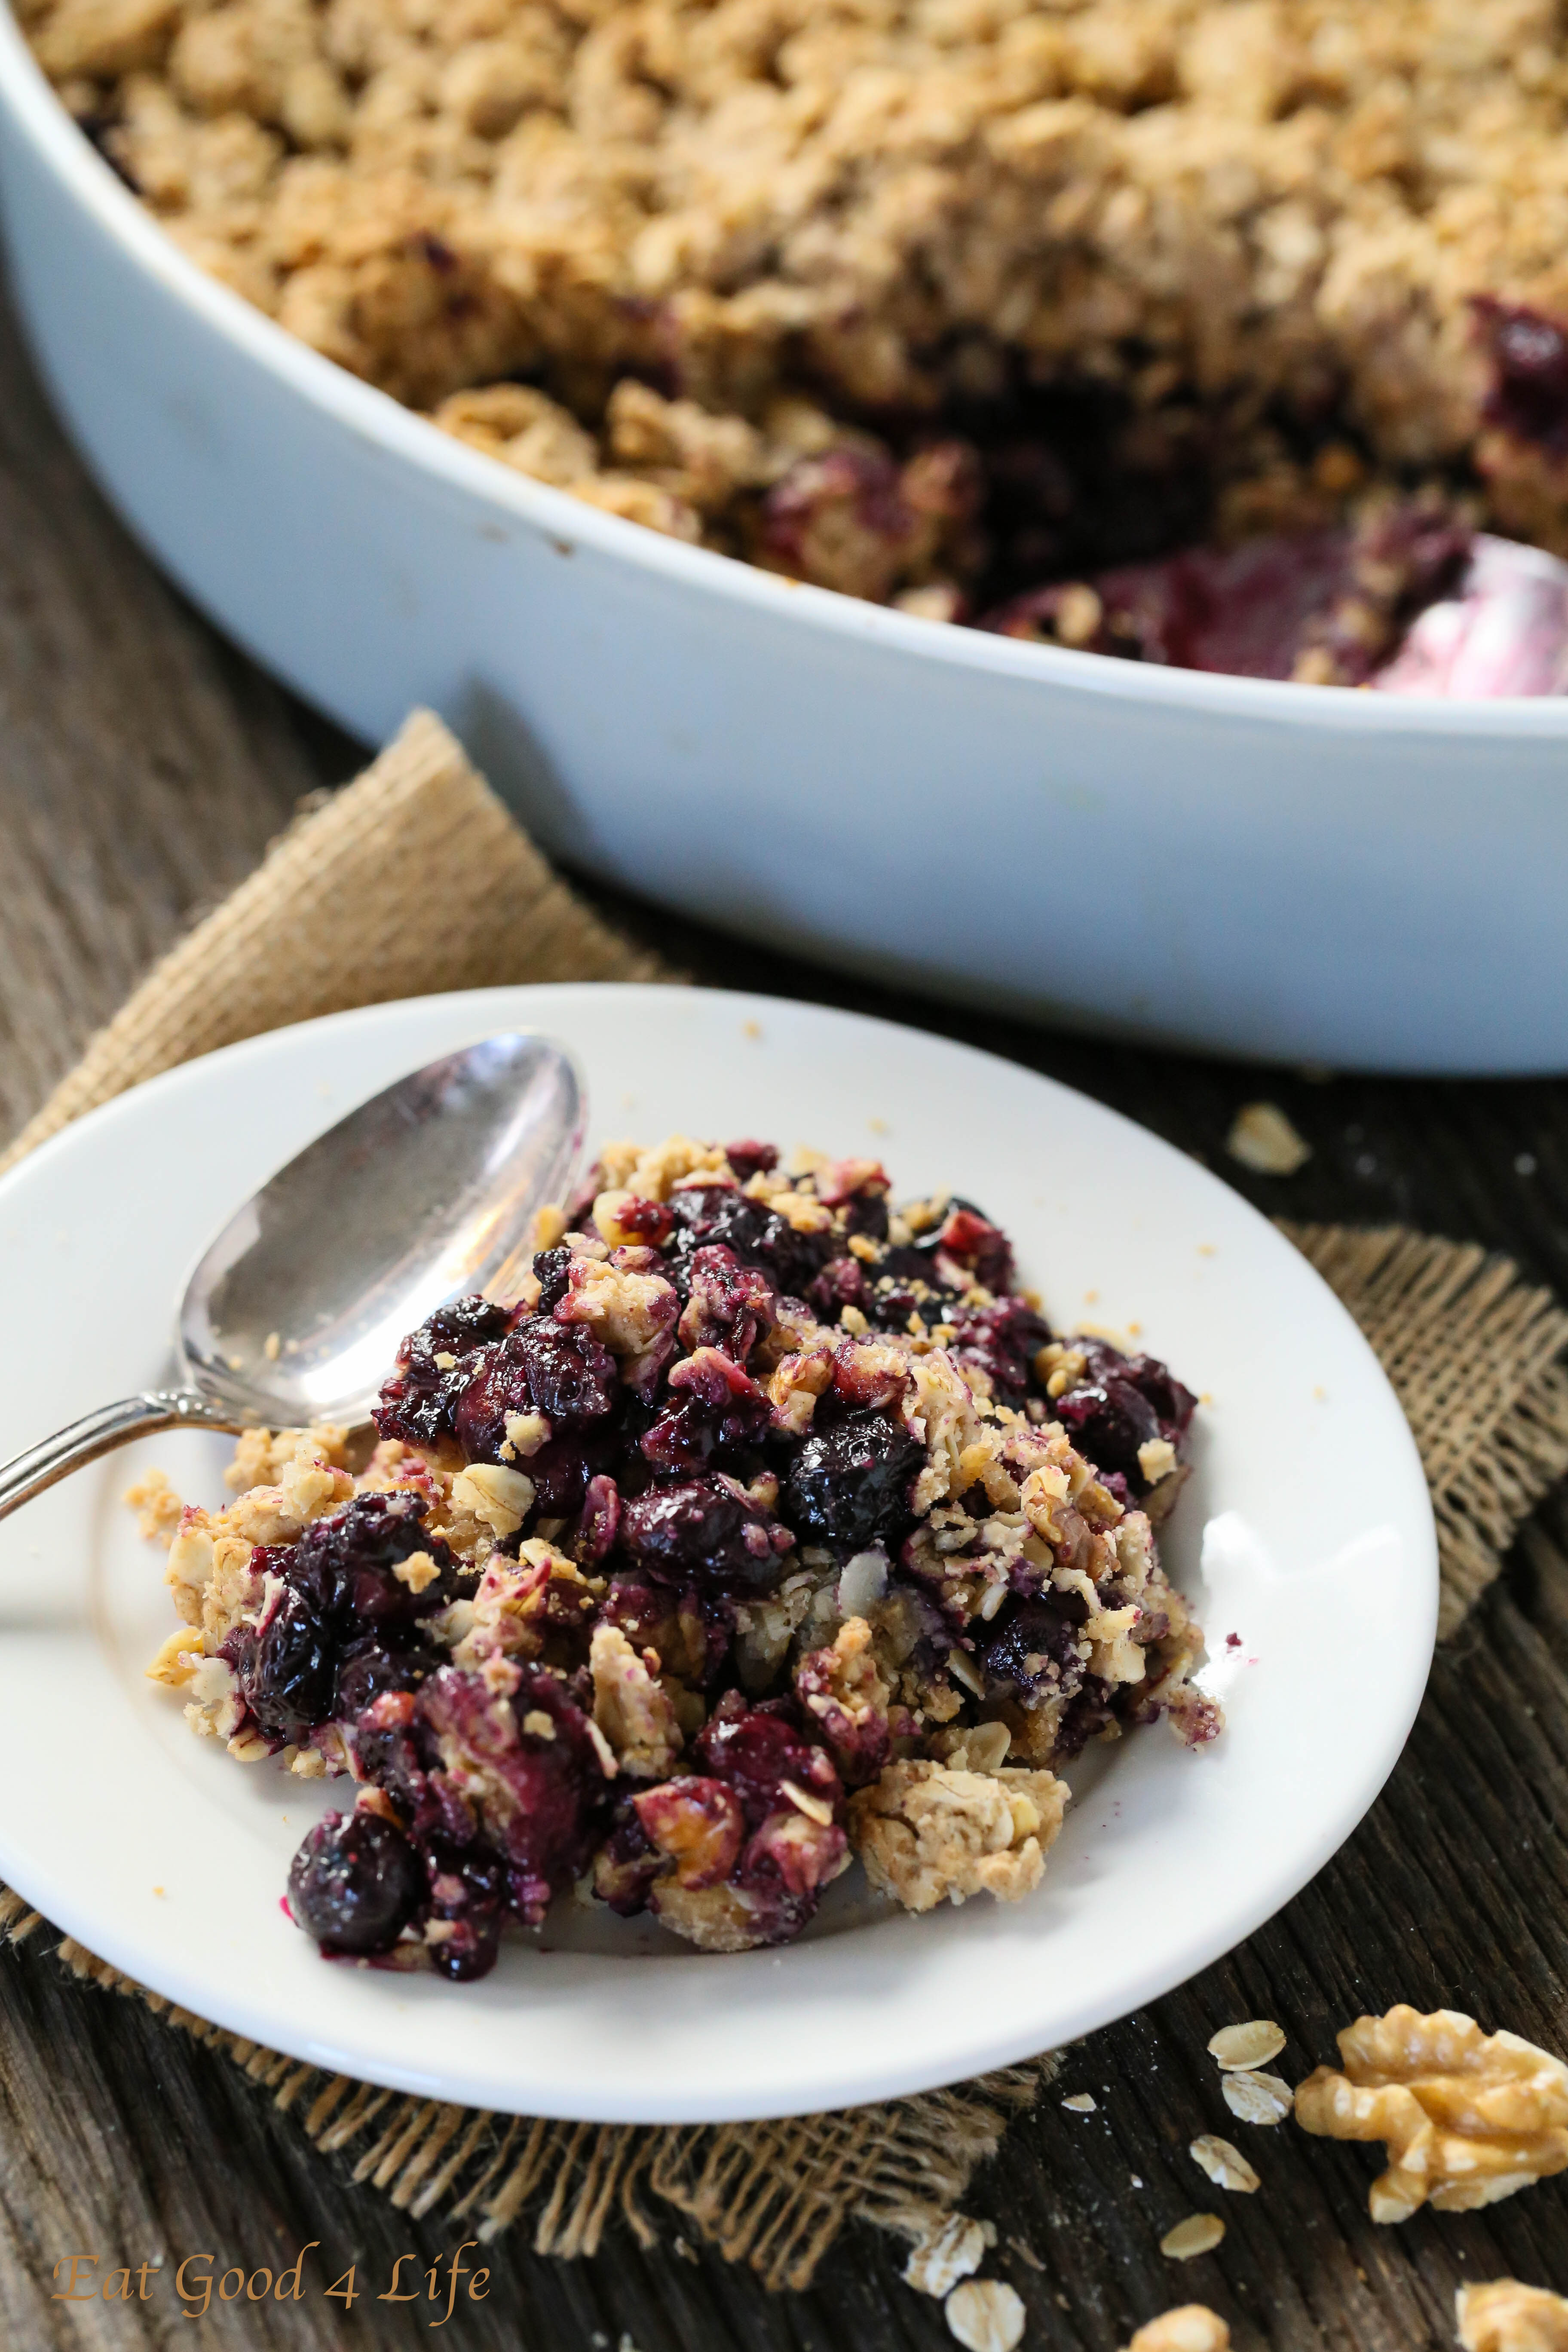 Watch Sugar and Spice Blueberry Crisp video